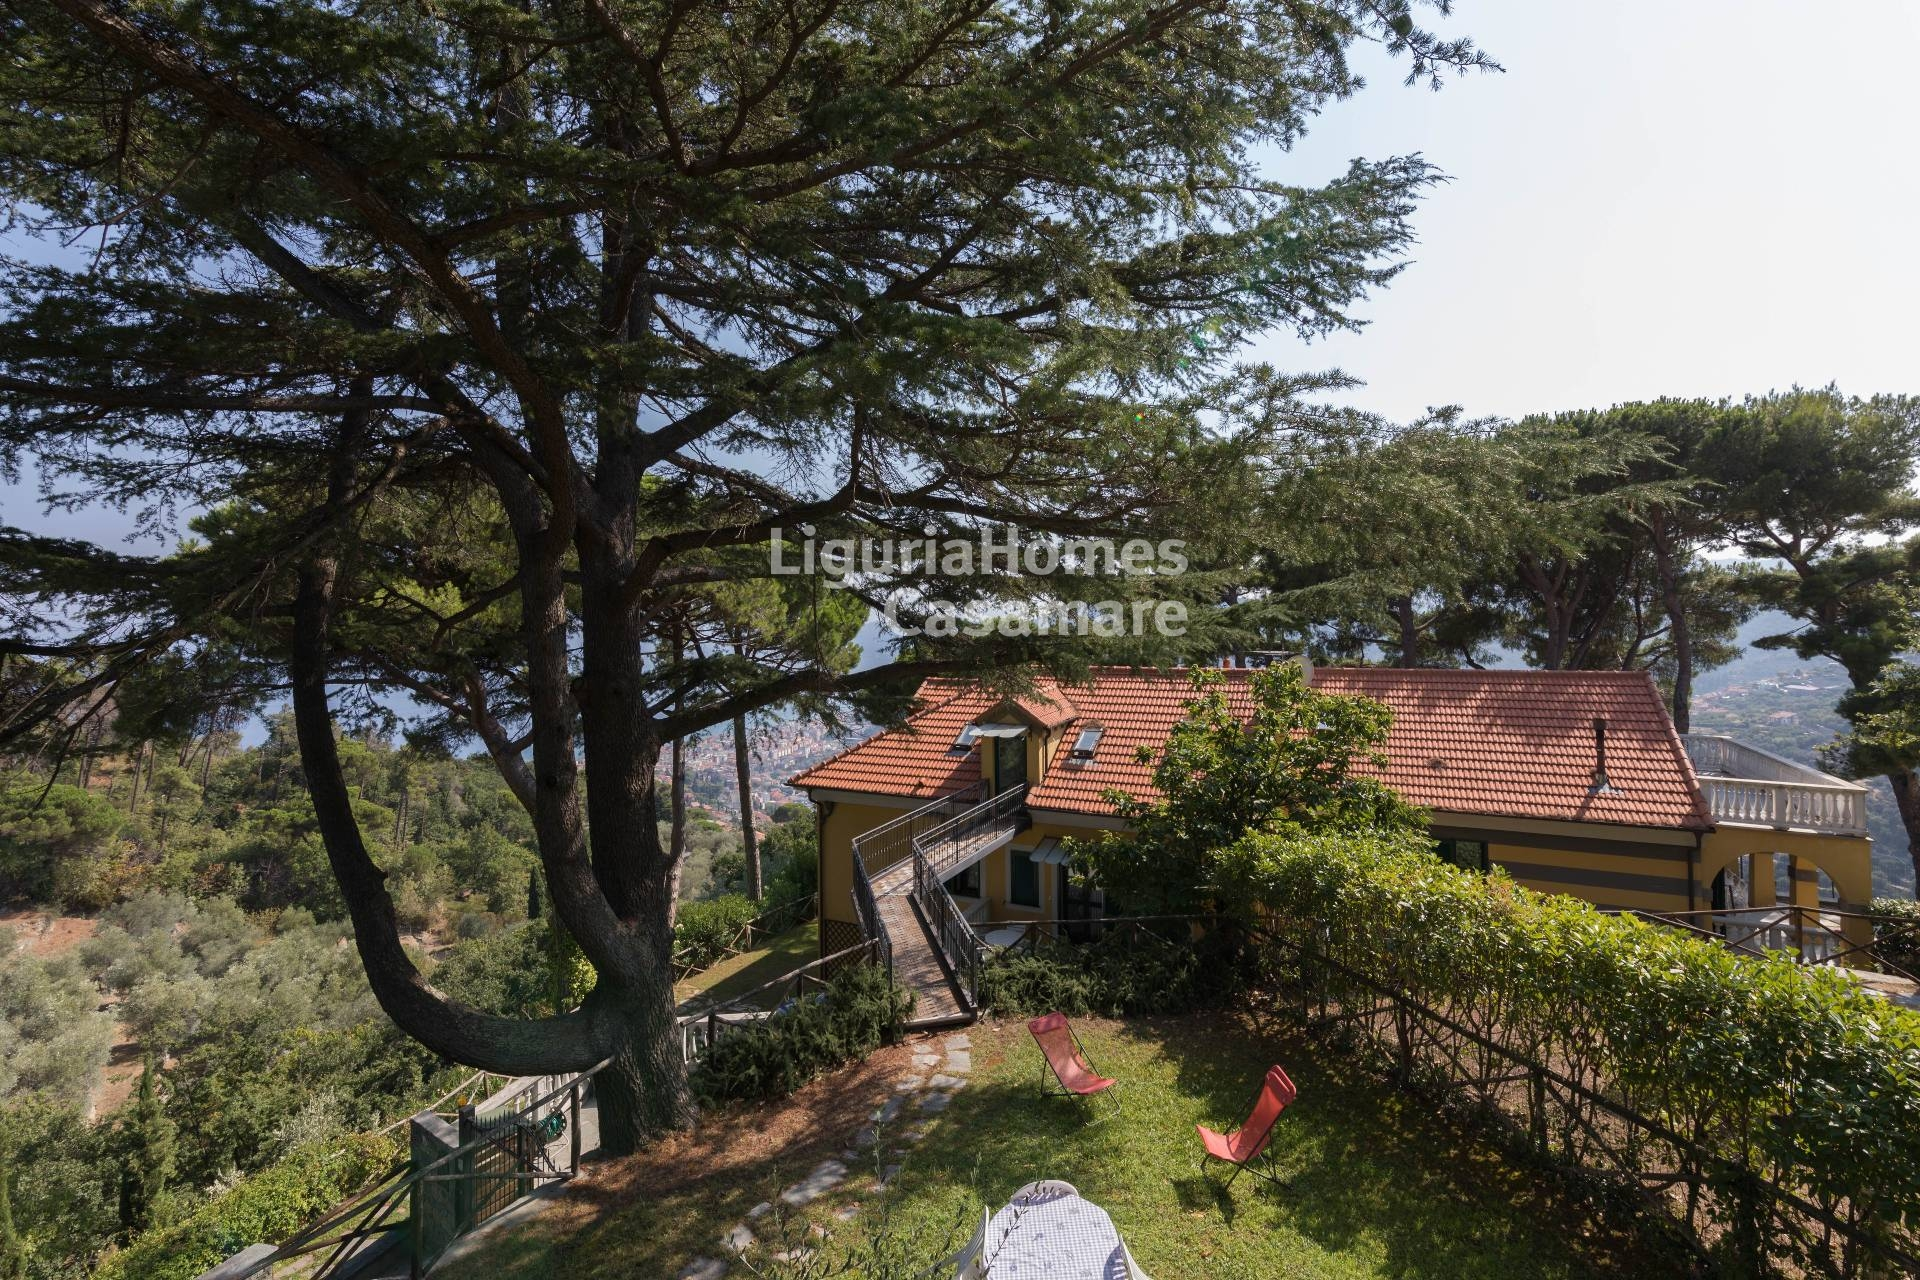 Italy Property for sale in Liguria, Alassio